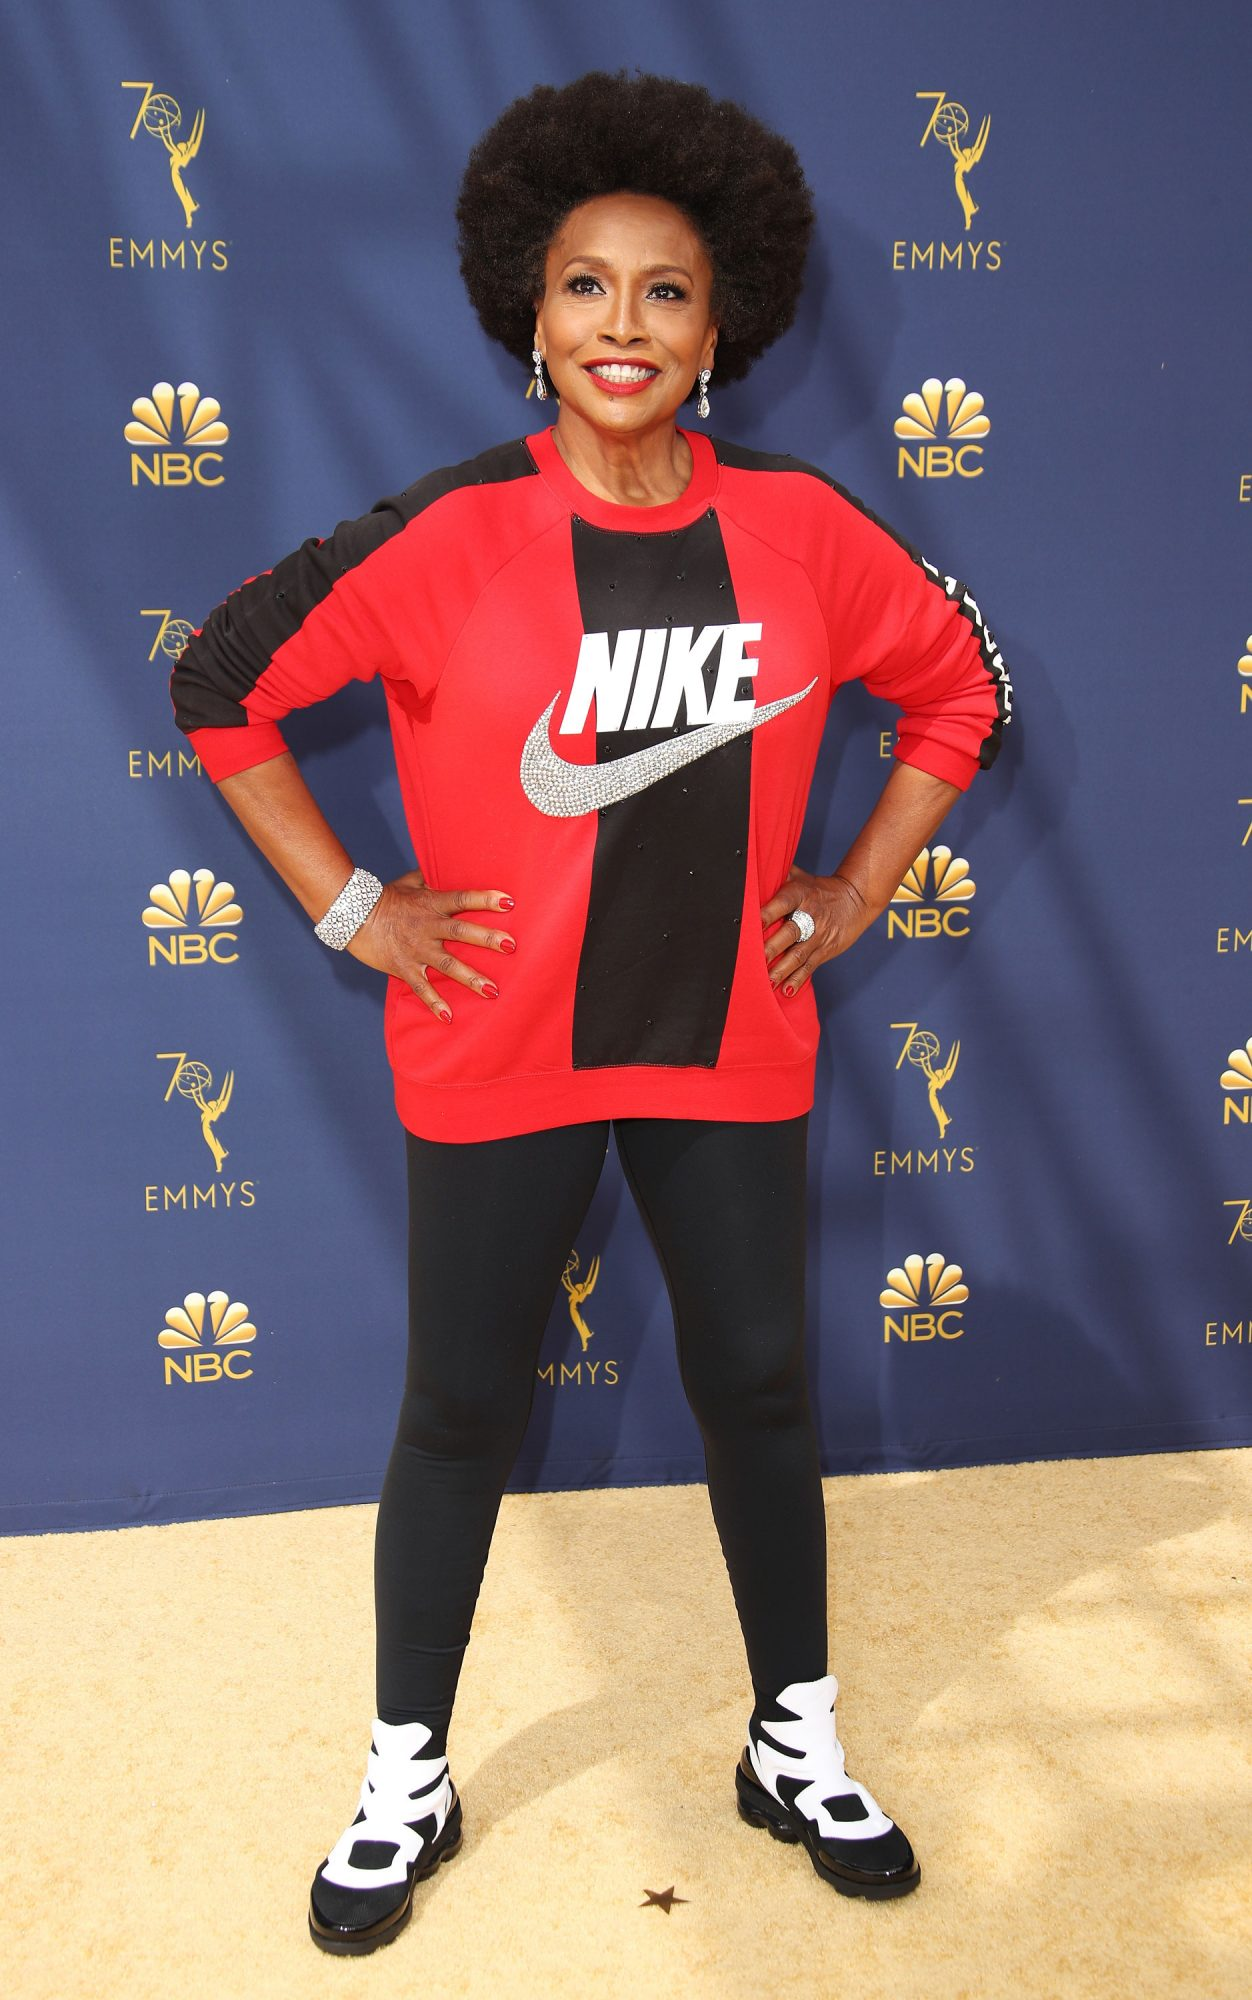 STATEMENT MAKERS: JENIFER LEWIS